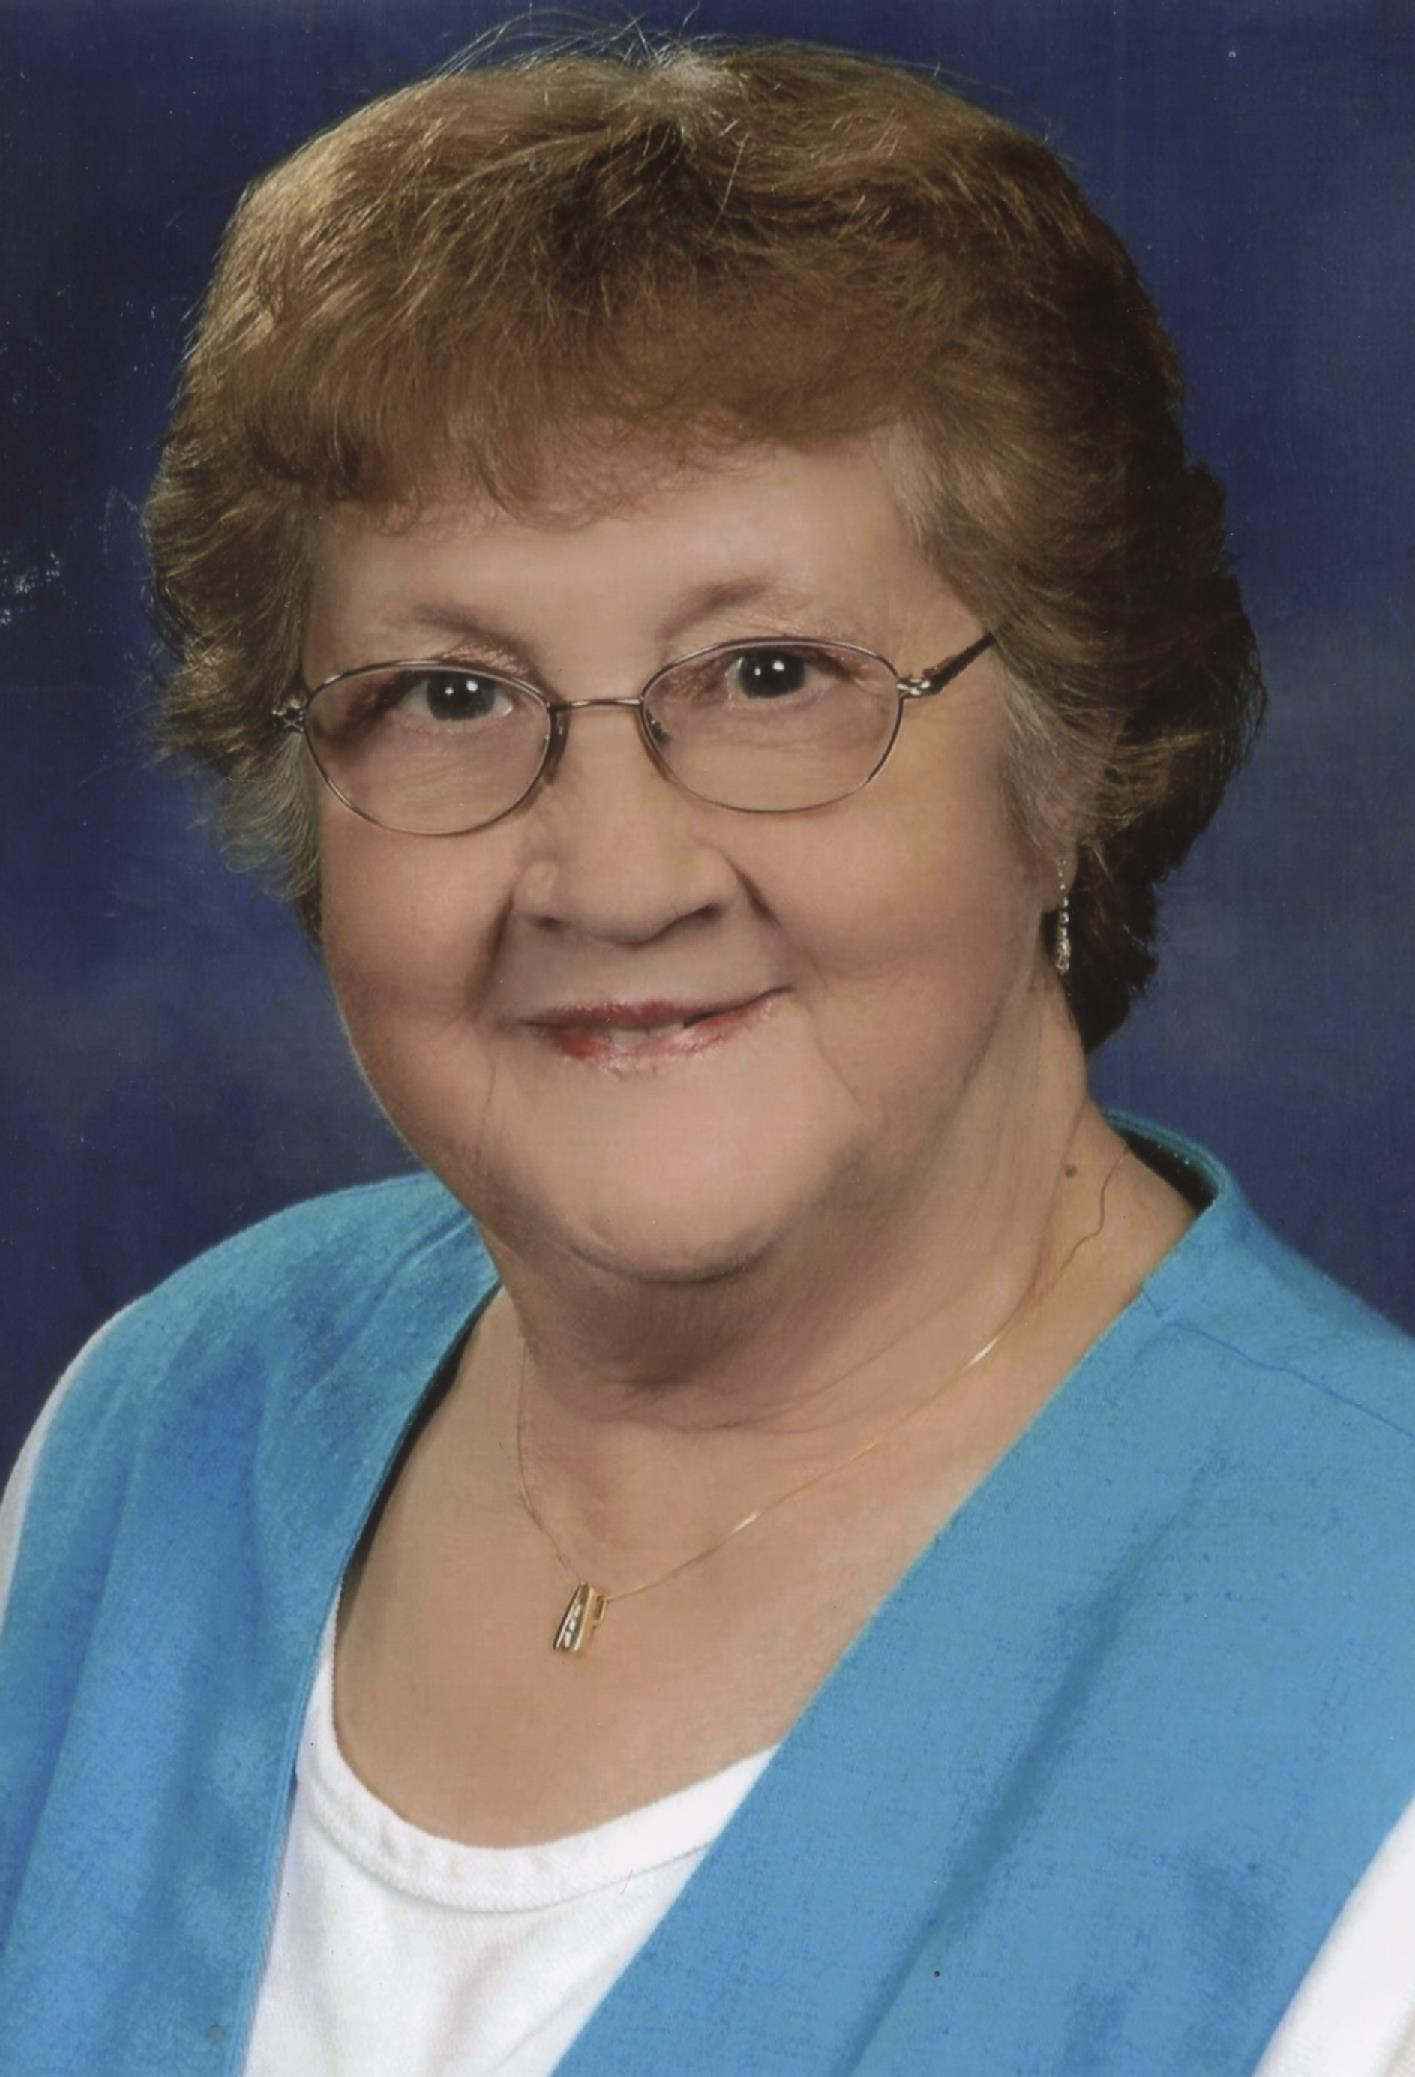 Mary Lou Buse, age 86, of Holland